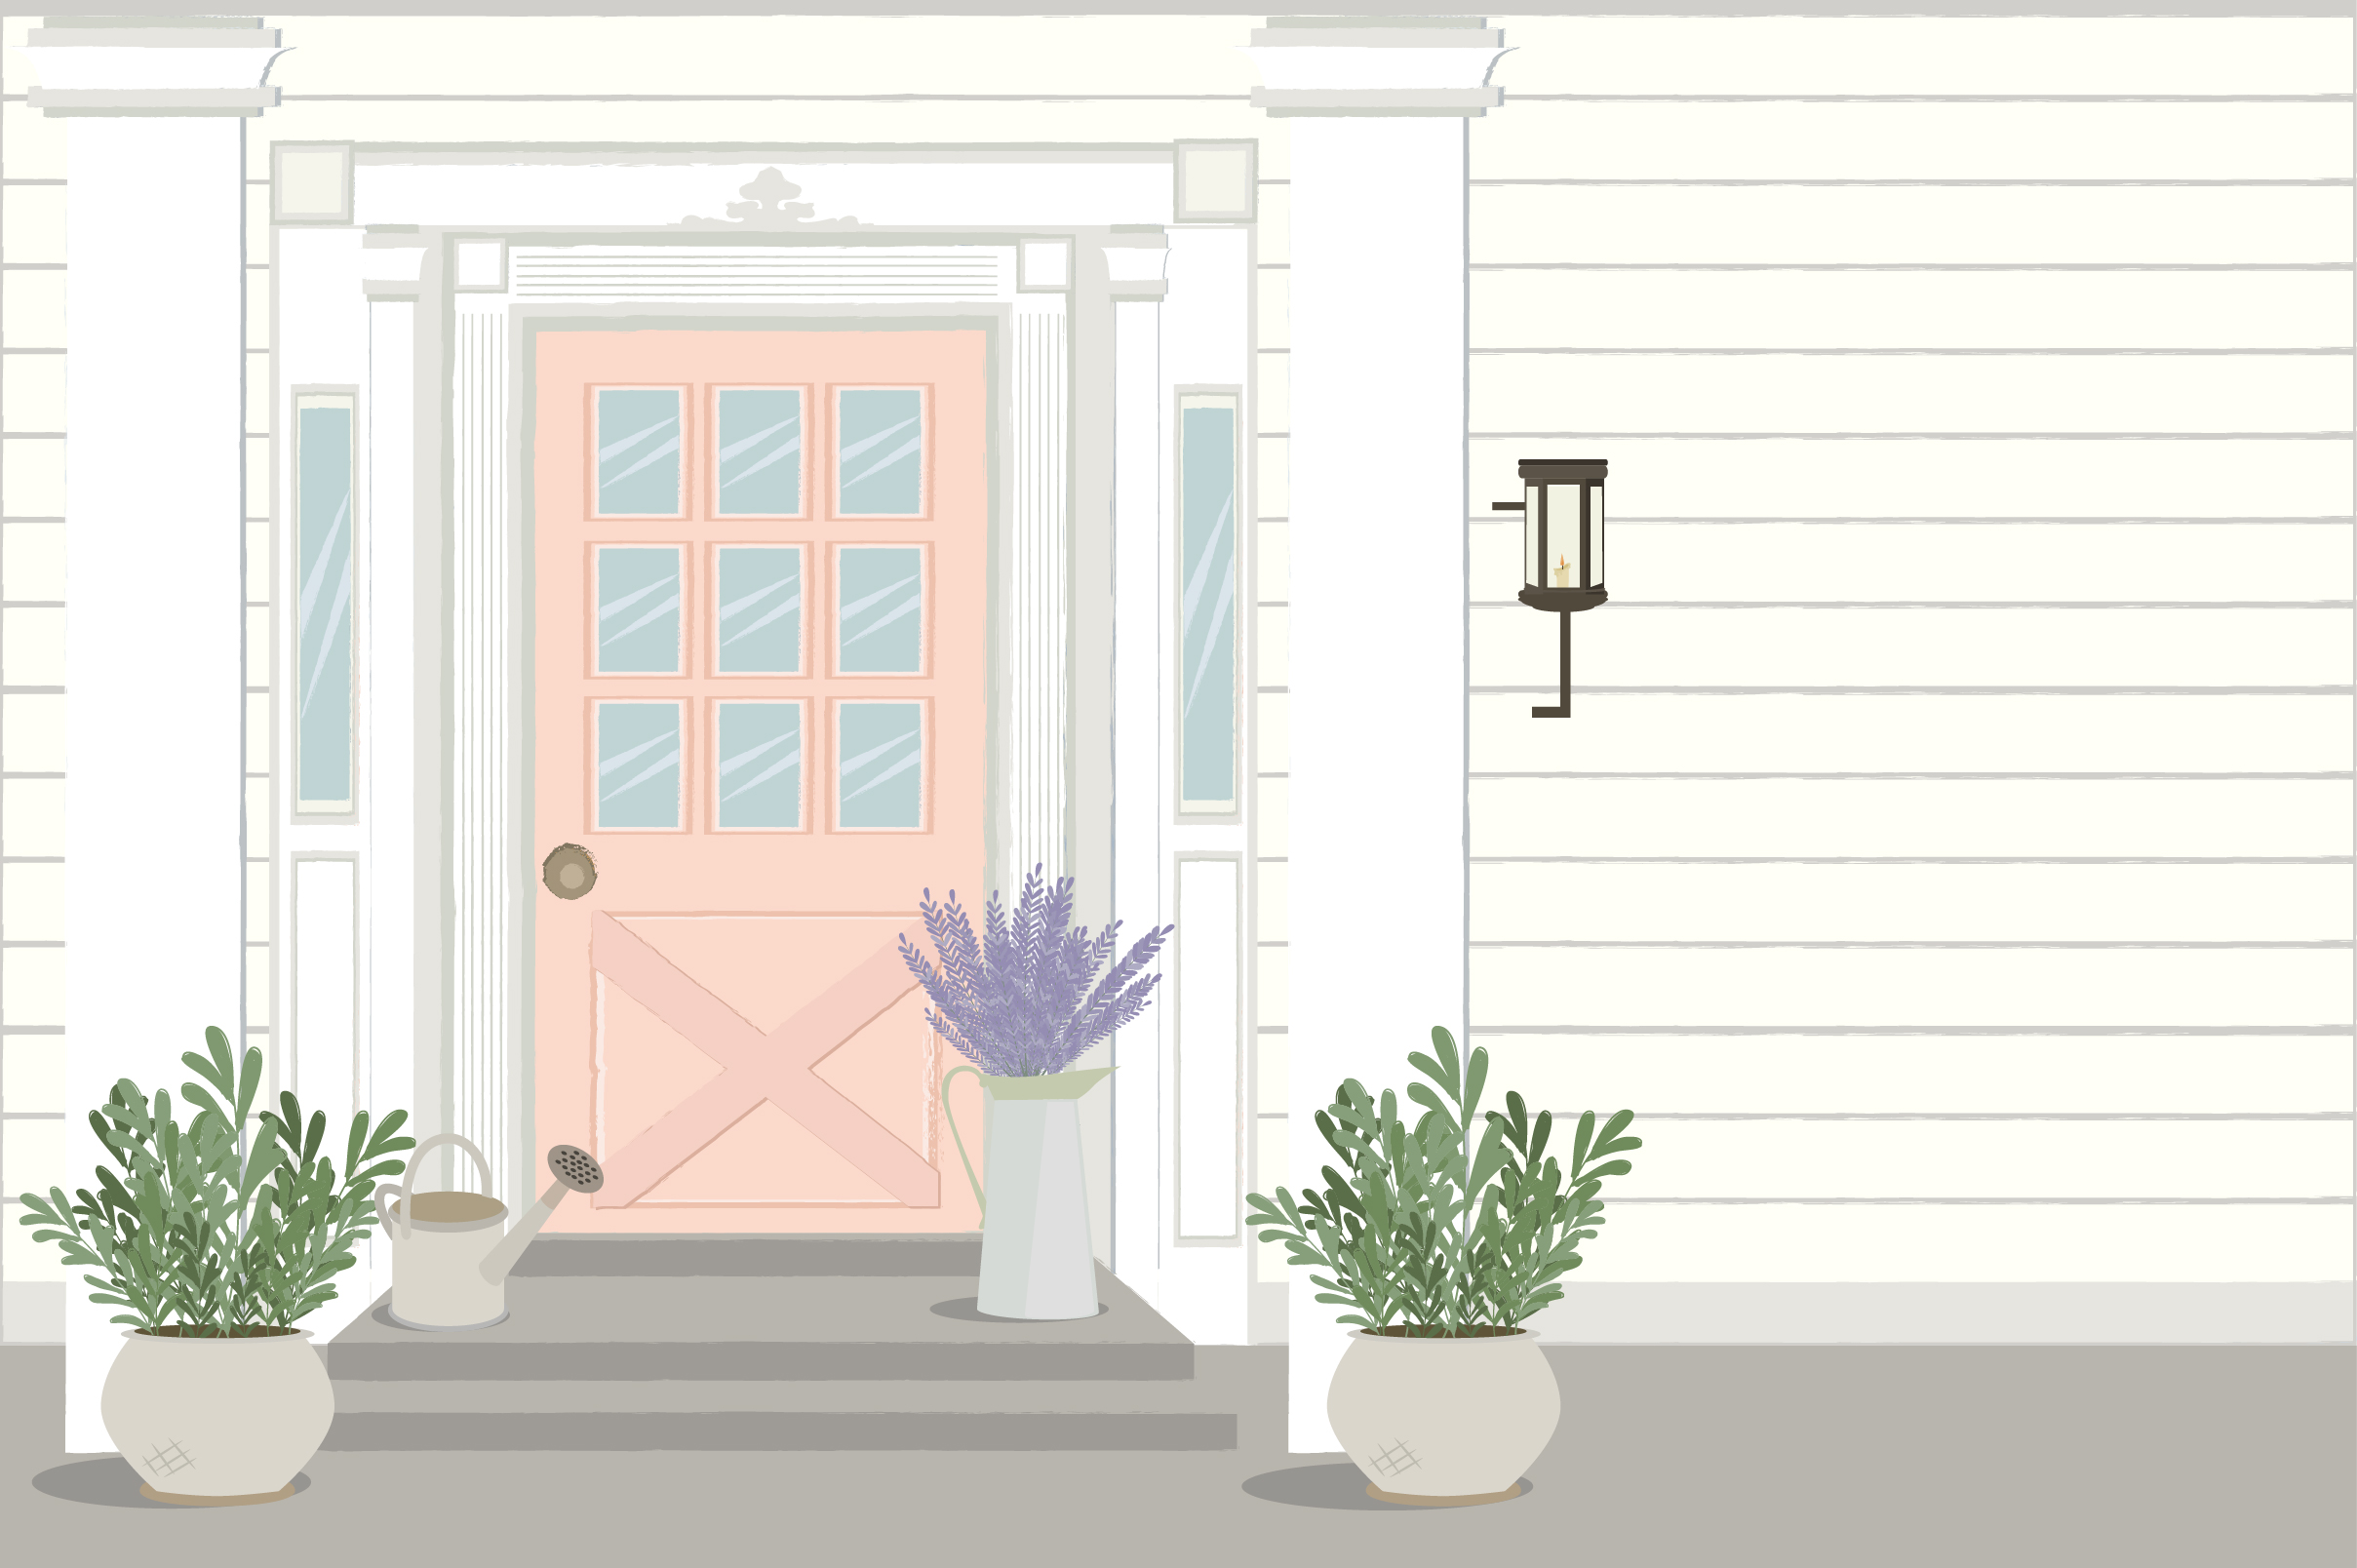 Doors design collection example image 8